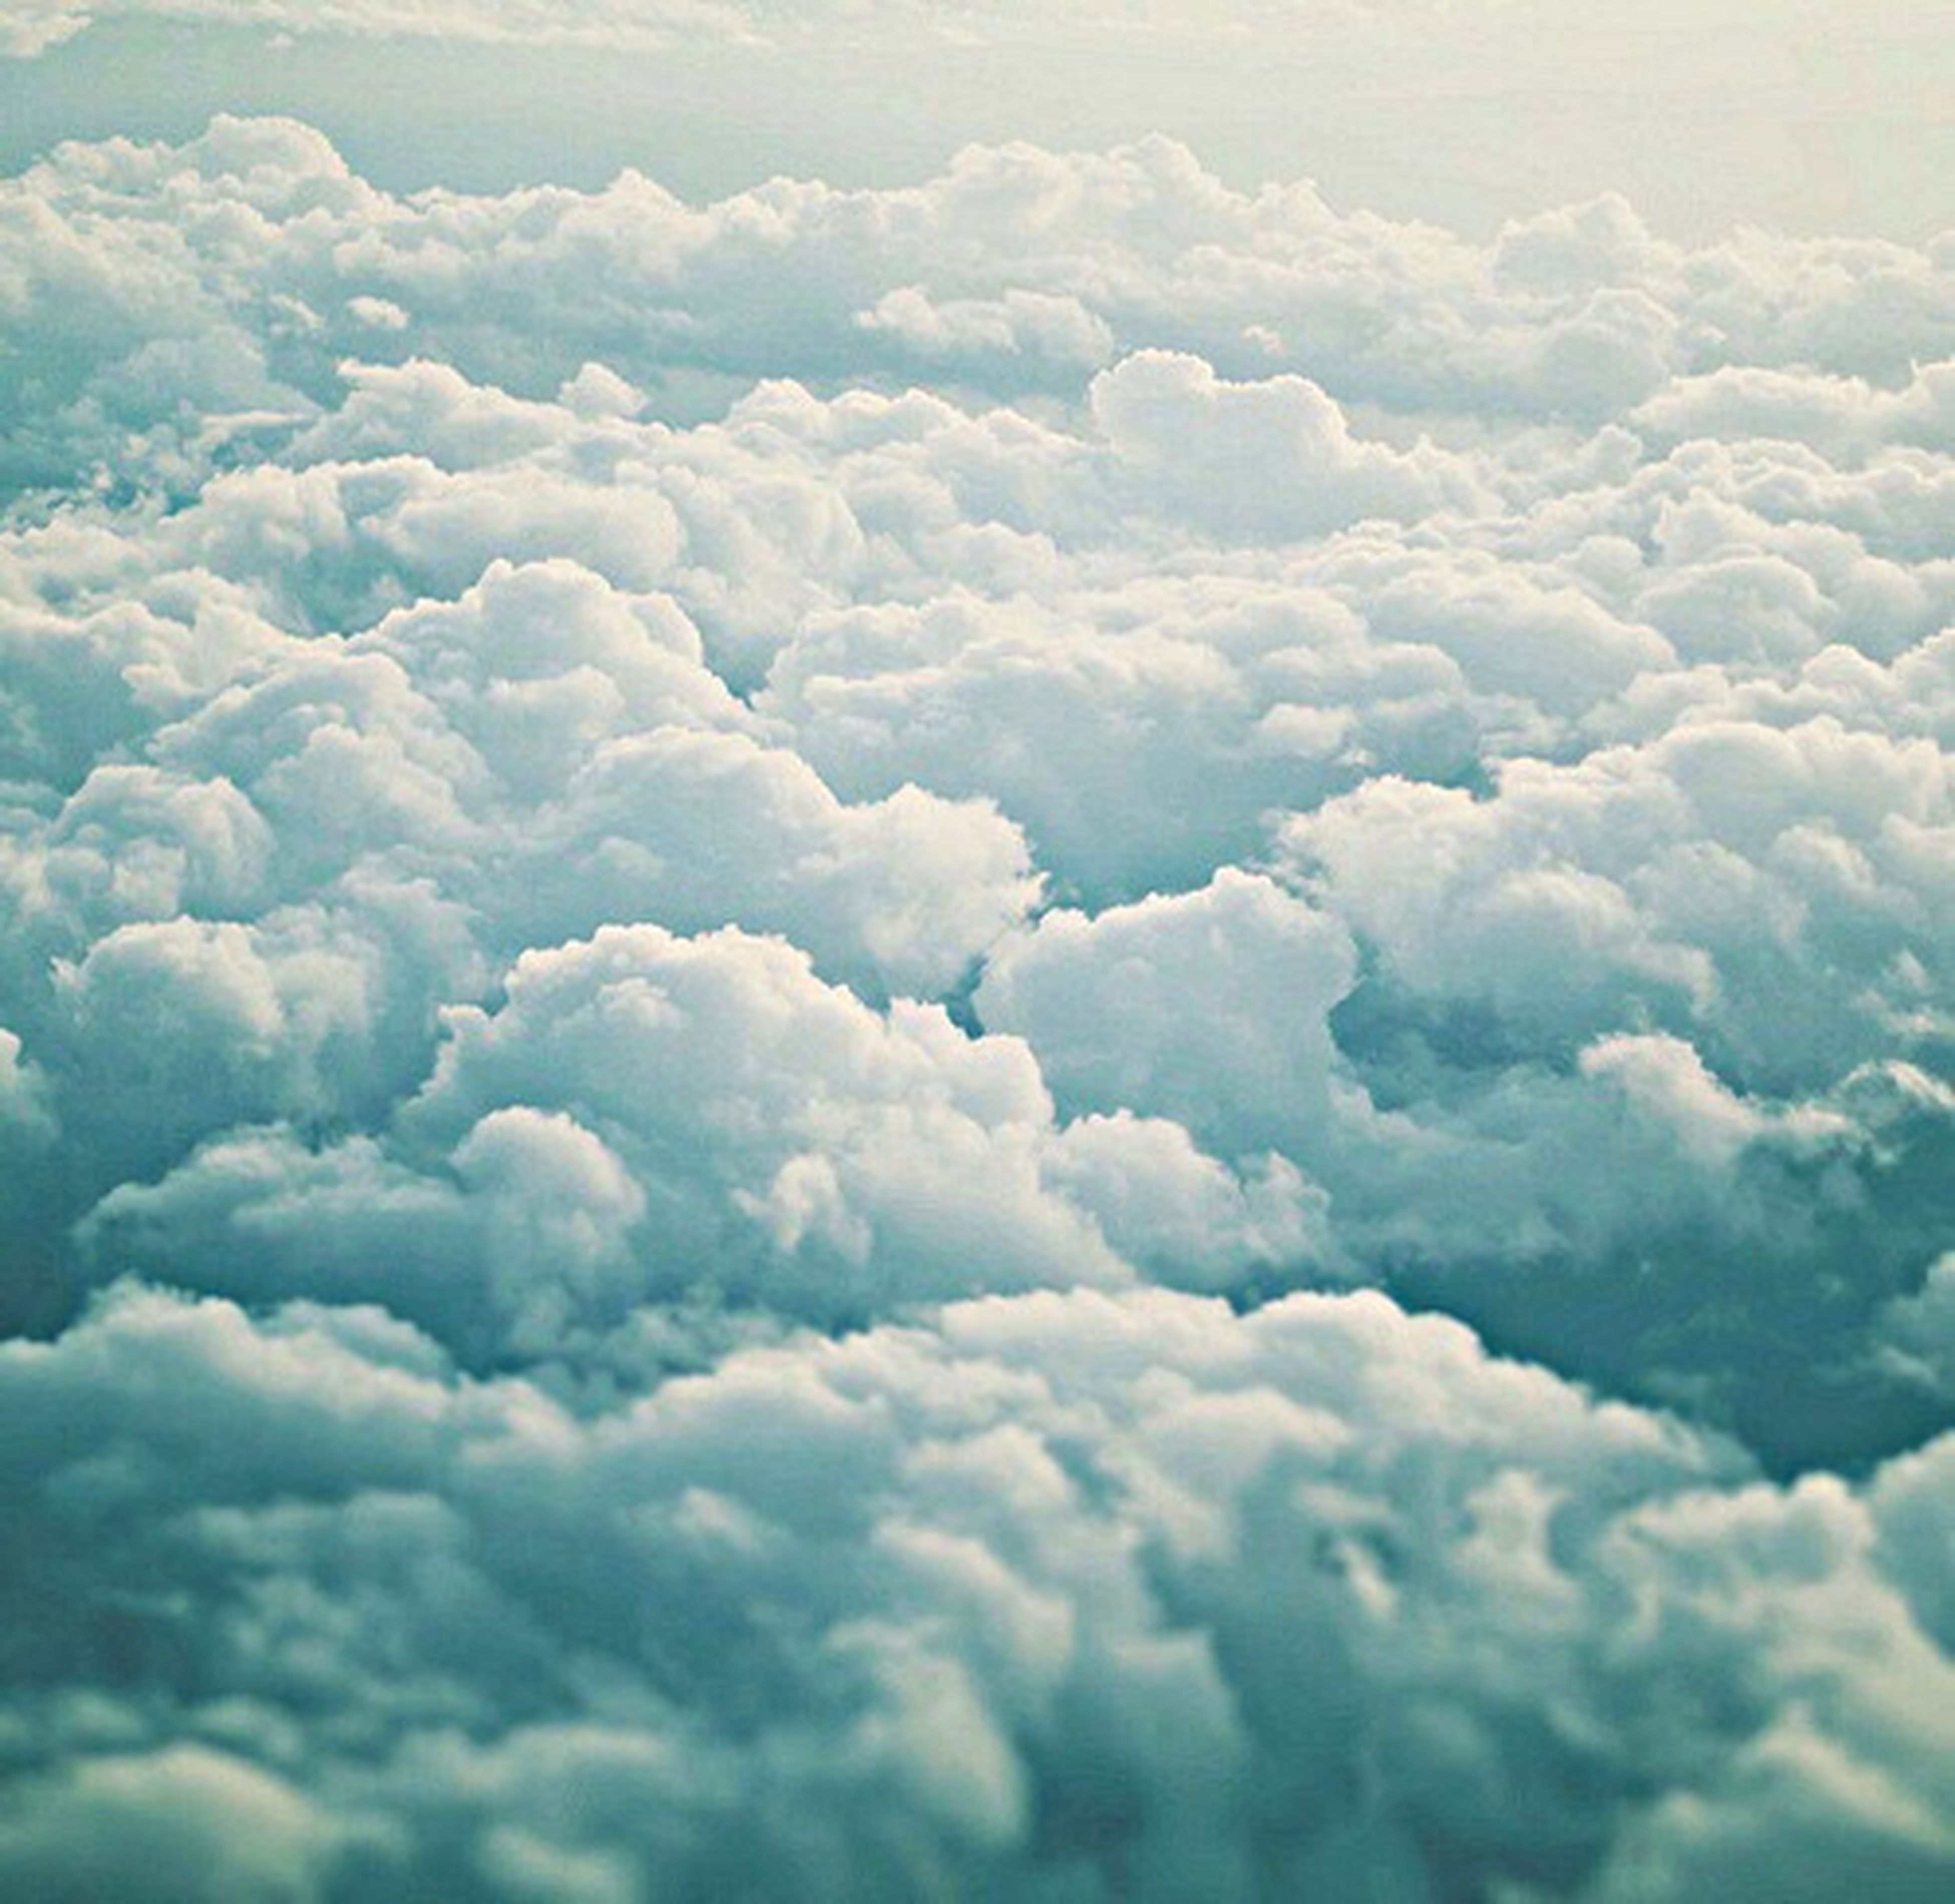 cloudscape, beauty in nature, softness, scenics, backgrounds, aerial view, cloud - sky, fluffy, majestic, tranquility, tranquil scene, nature, environment, blue, cumulus cloud, awe, white color, sky, cloud, heaven, sky only, day, meteorology, full frame, idyllic, vibrant color, ethereal, cumulus, high up, the natural world, atmosphere, atmospheric mood, outdoors, above, cloudy, dreamlike